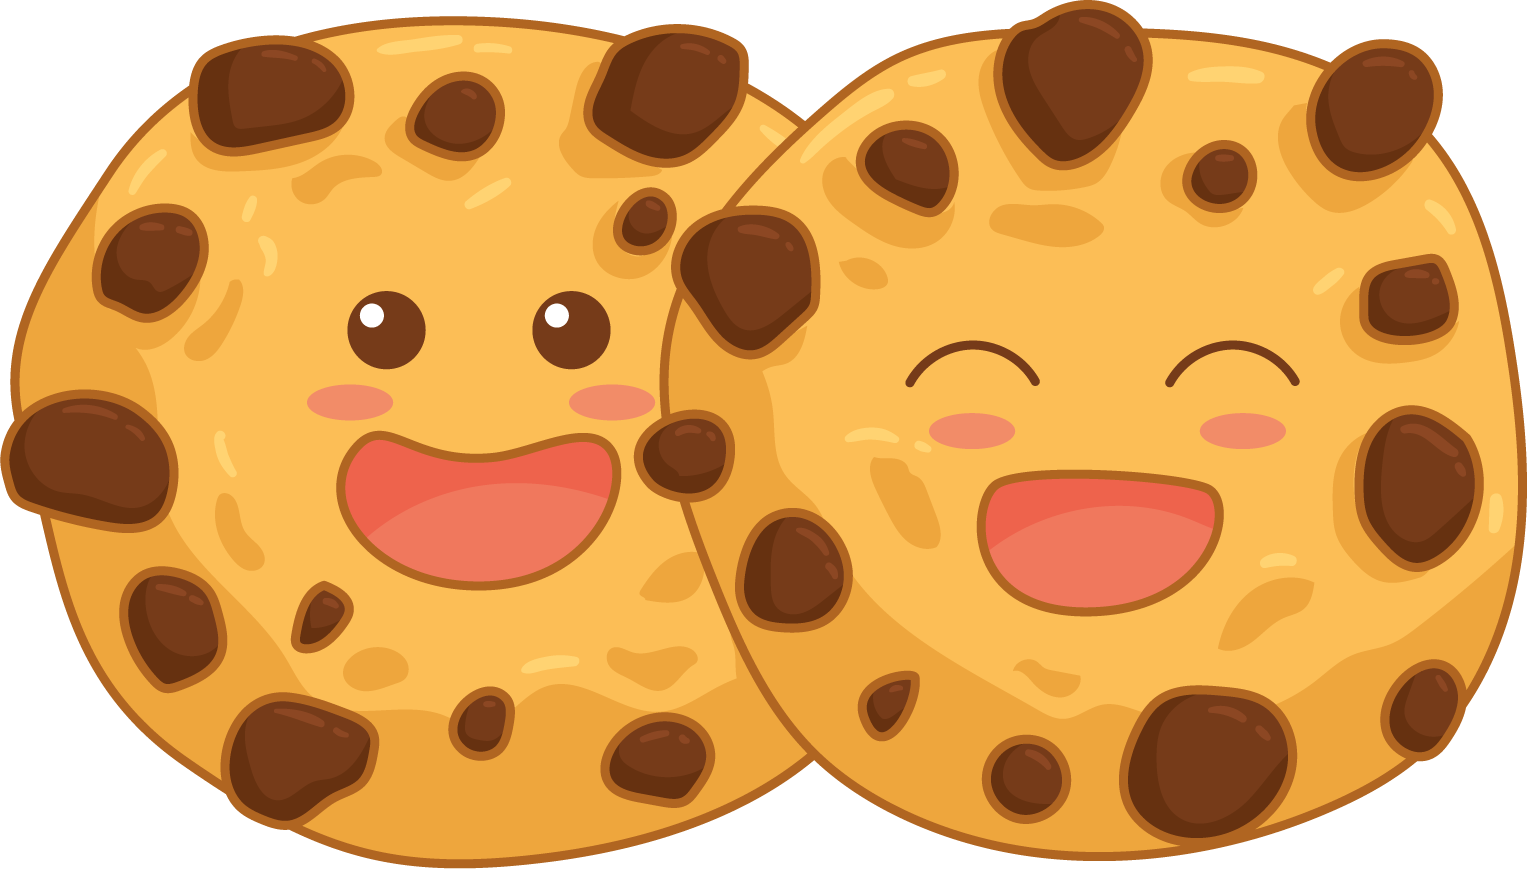 Smiling Face Chocolate Cookie Symbol Images image #47945